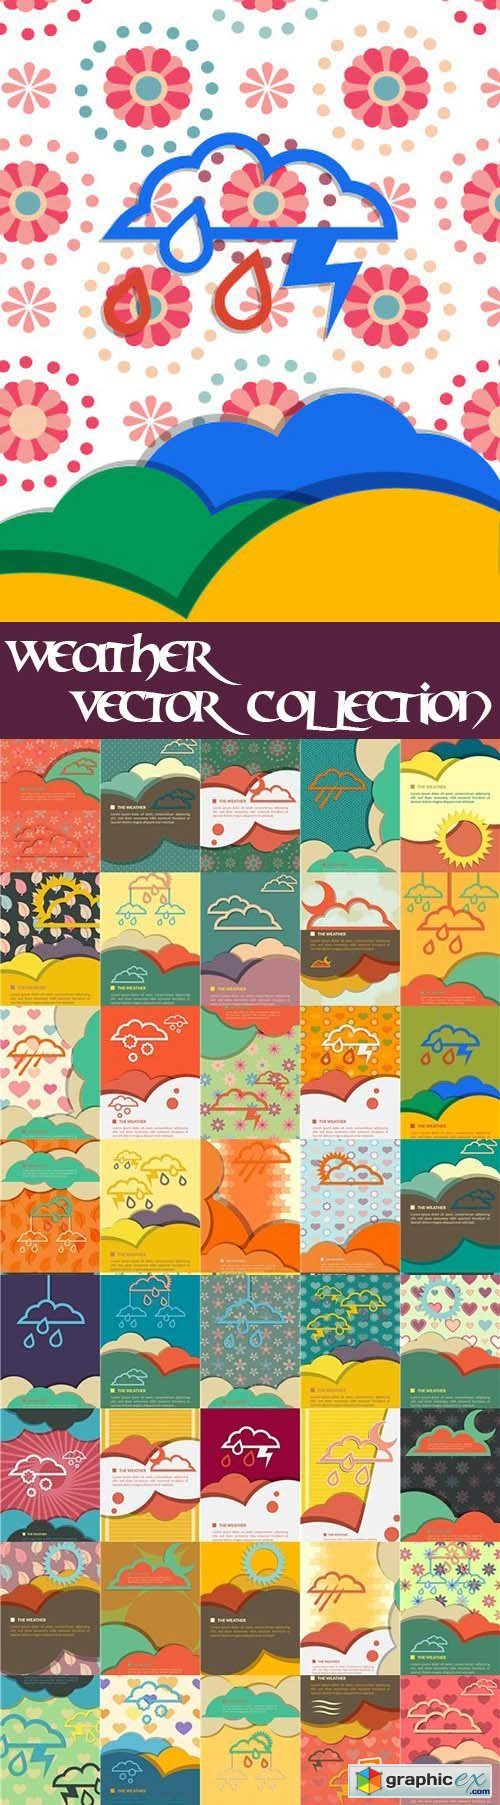 Weather Vector Collection